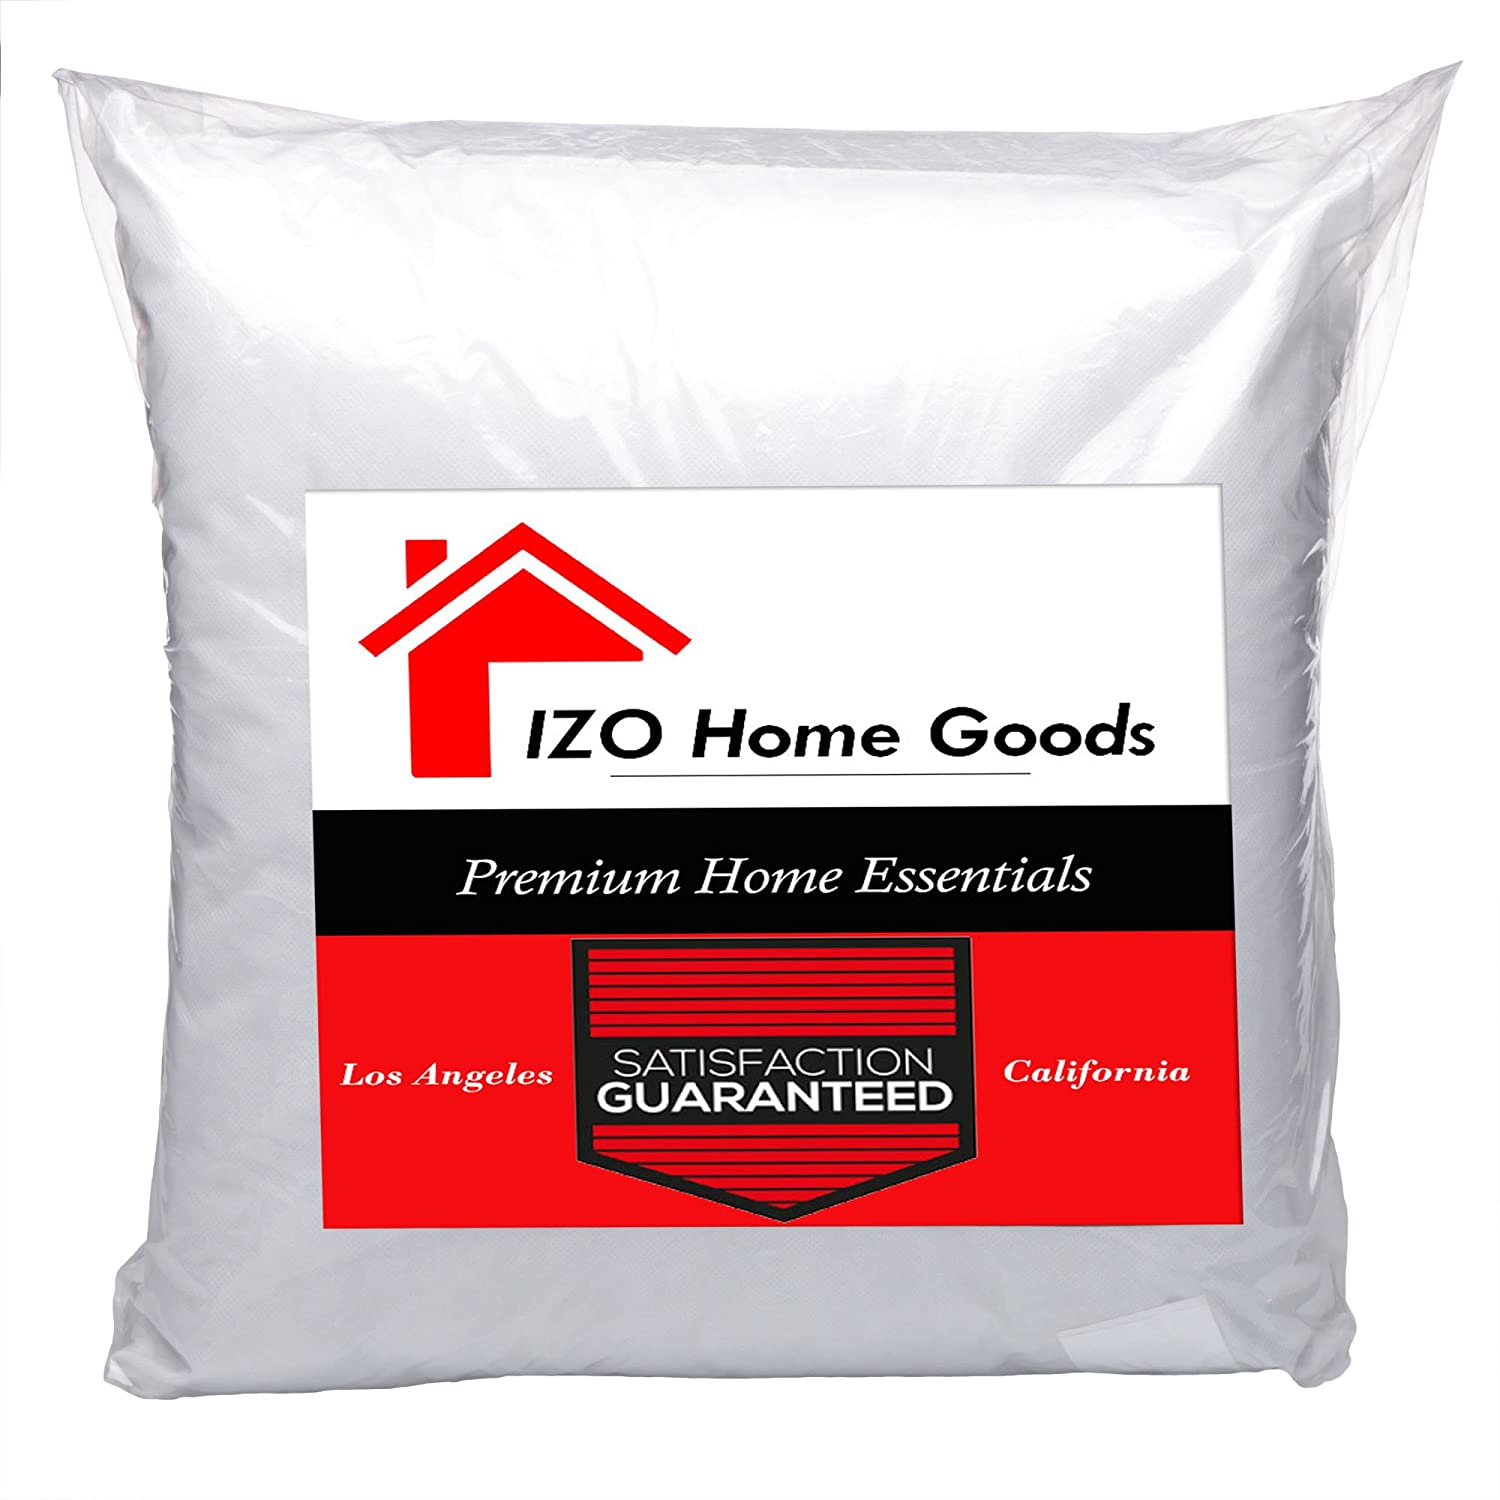 IZO Home Goods Square Hypo-allergenic Polyester Filled Throw Pillow Form Insert, 22 W x 22 L 22 W x 22 L